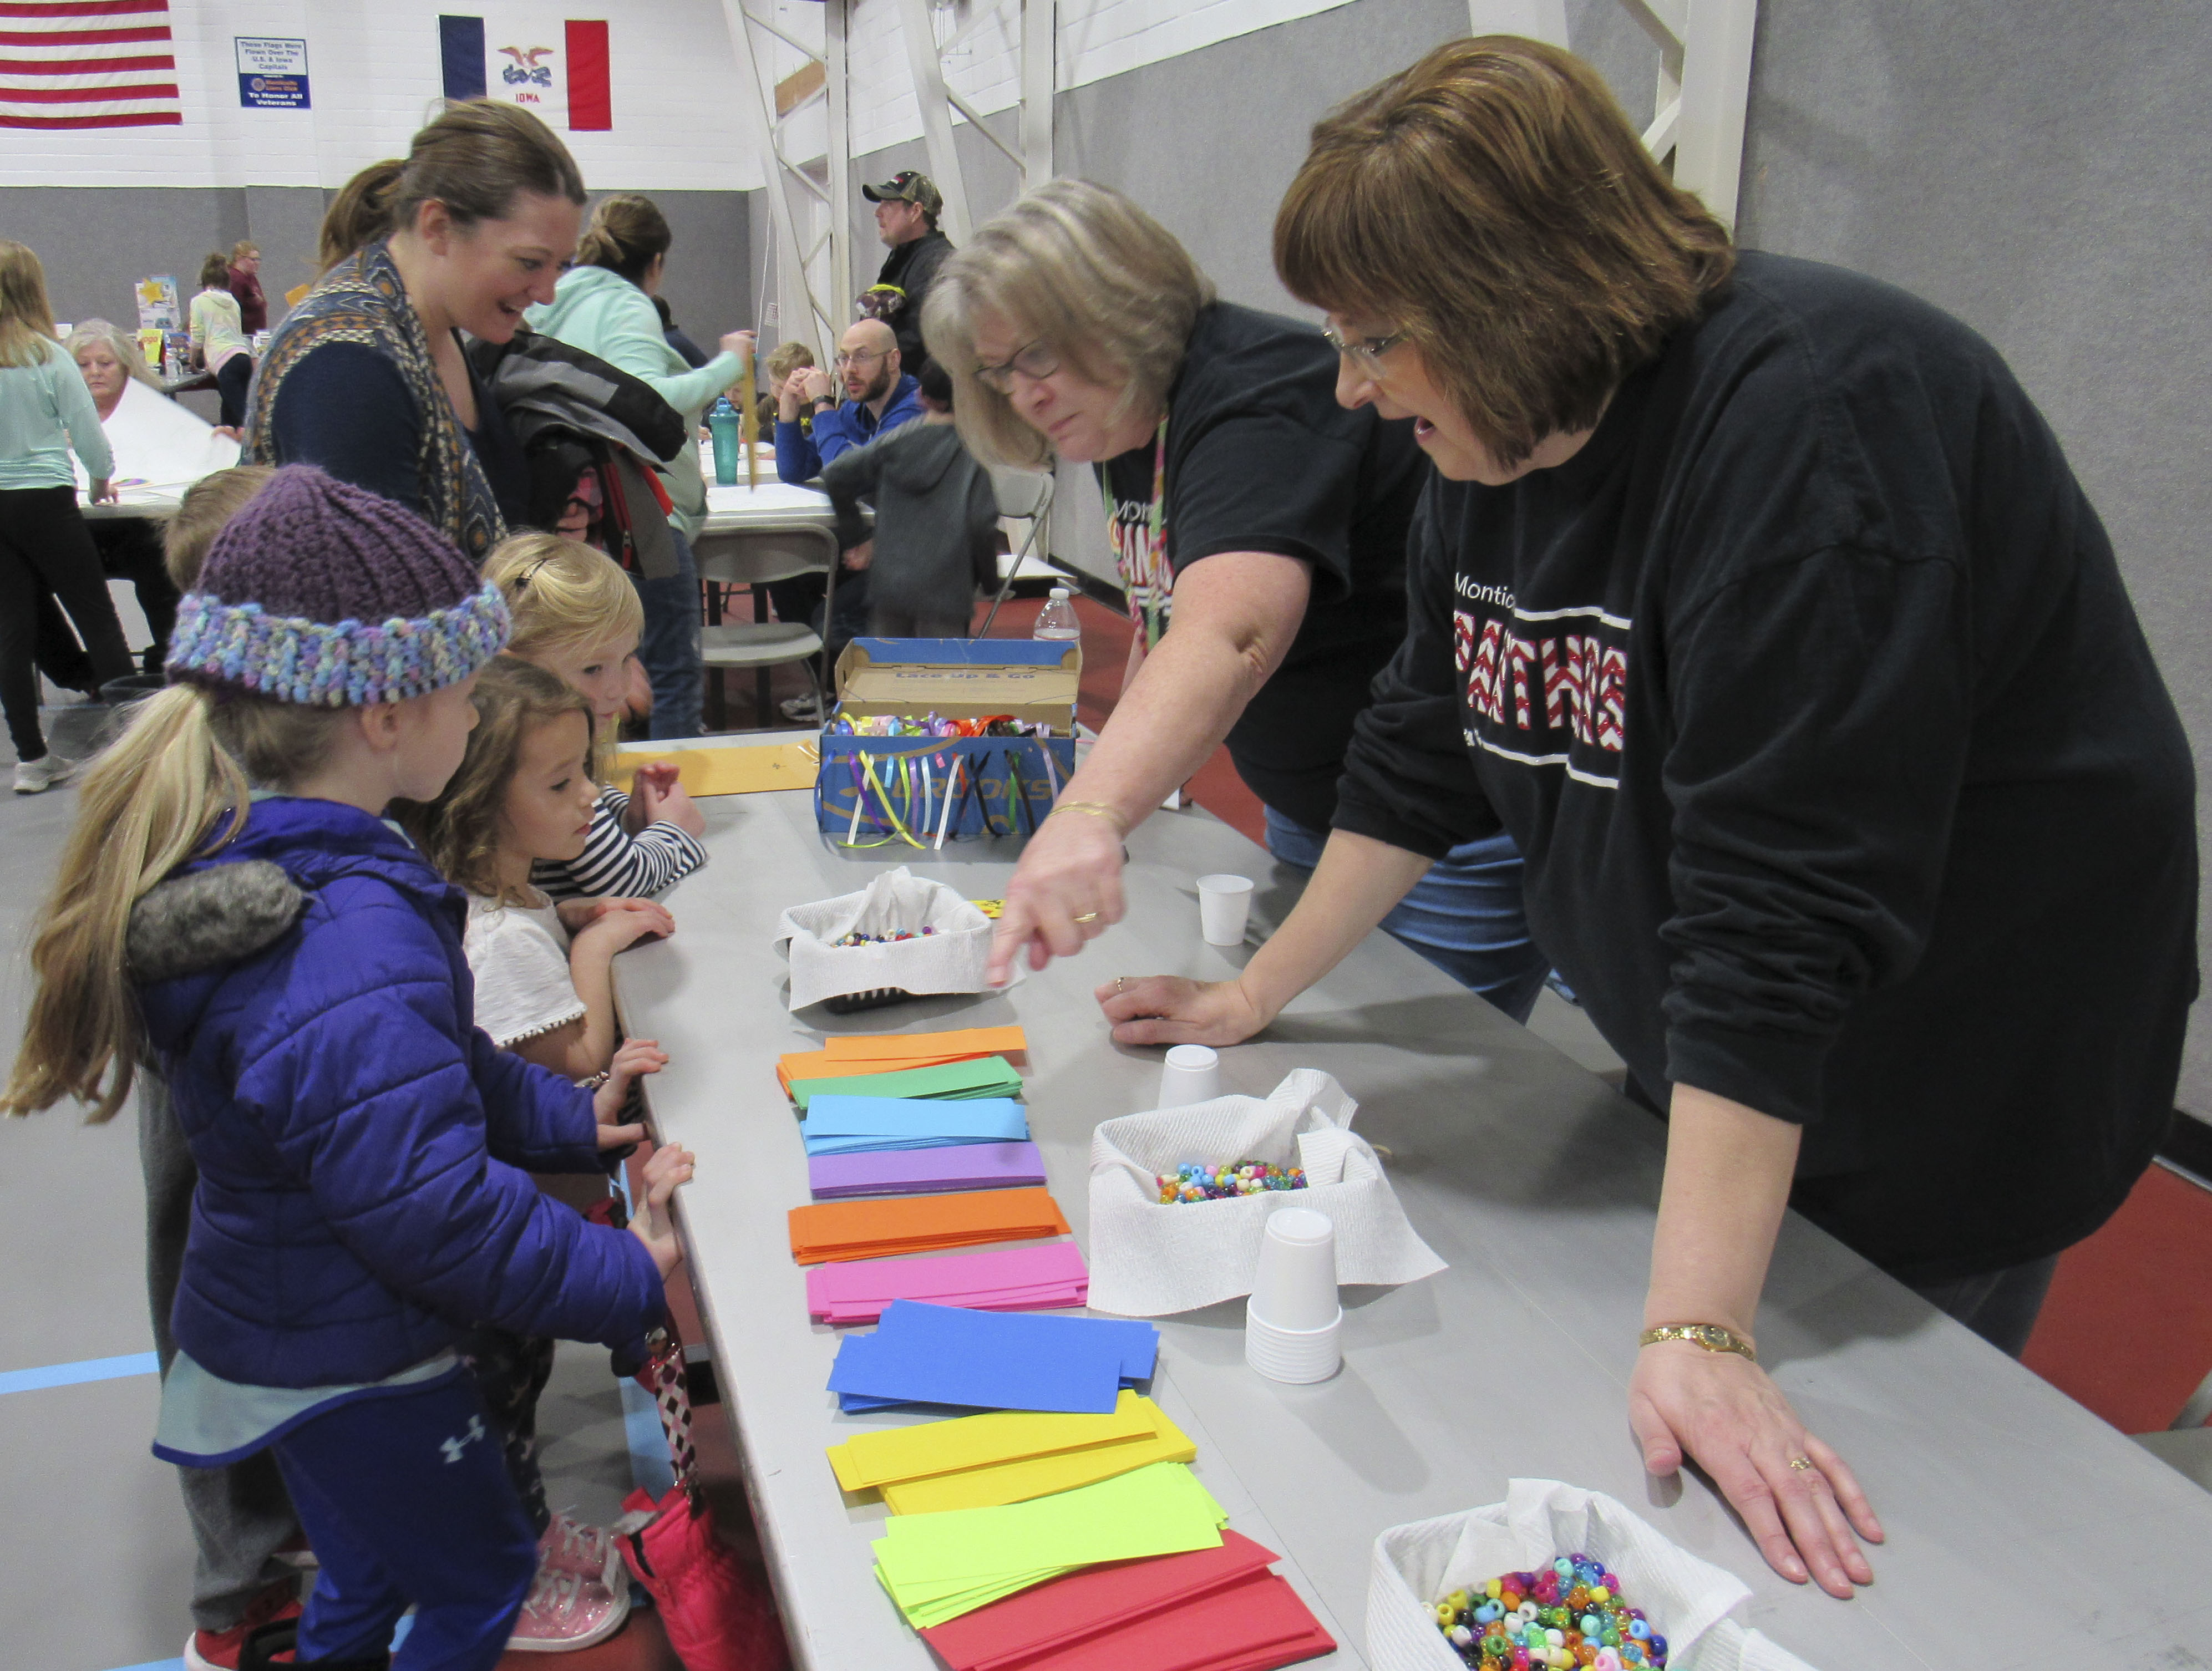 Carpenter Elementary Secretary Cindy Plumber and fourth-grade teacher Angie Wink pass out supplies for making bookmarks during Family Night on March 12. Parents and students of all ages took part in the evening event that was sponsored by the elementary PBIS team. There were several family crafts and learning activities for all ages. (Photos by Kim Brooks)